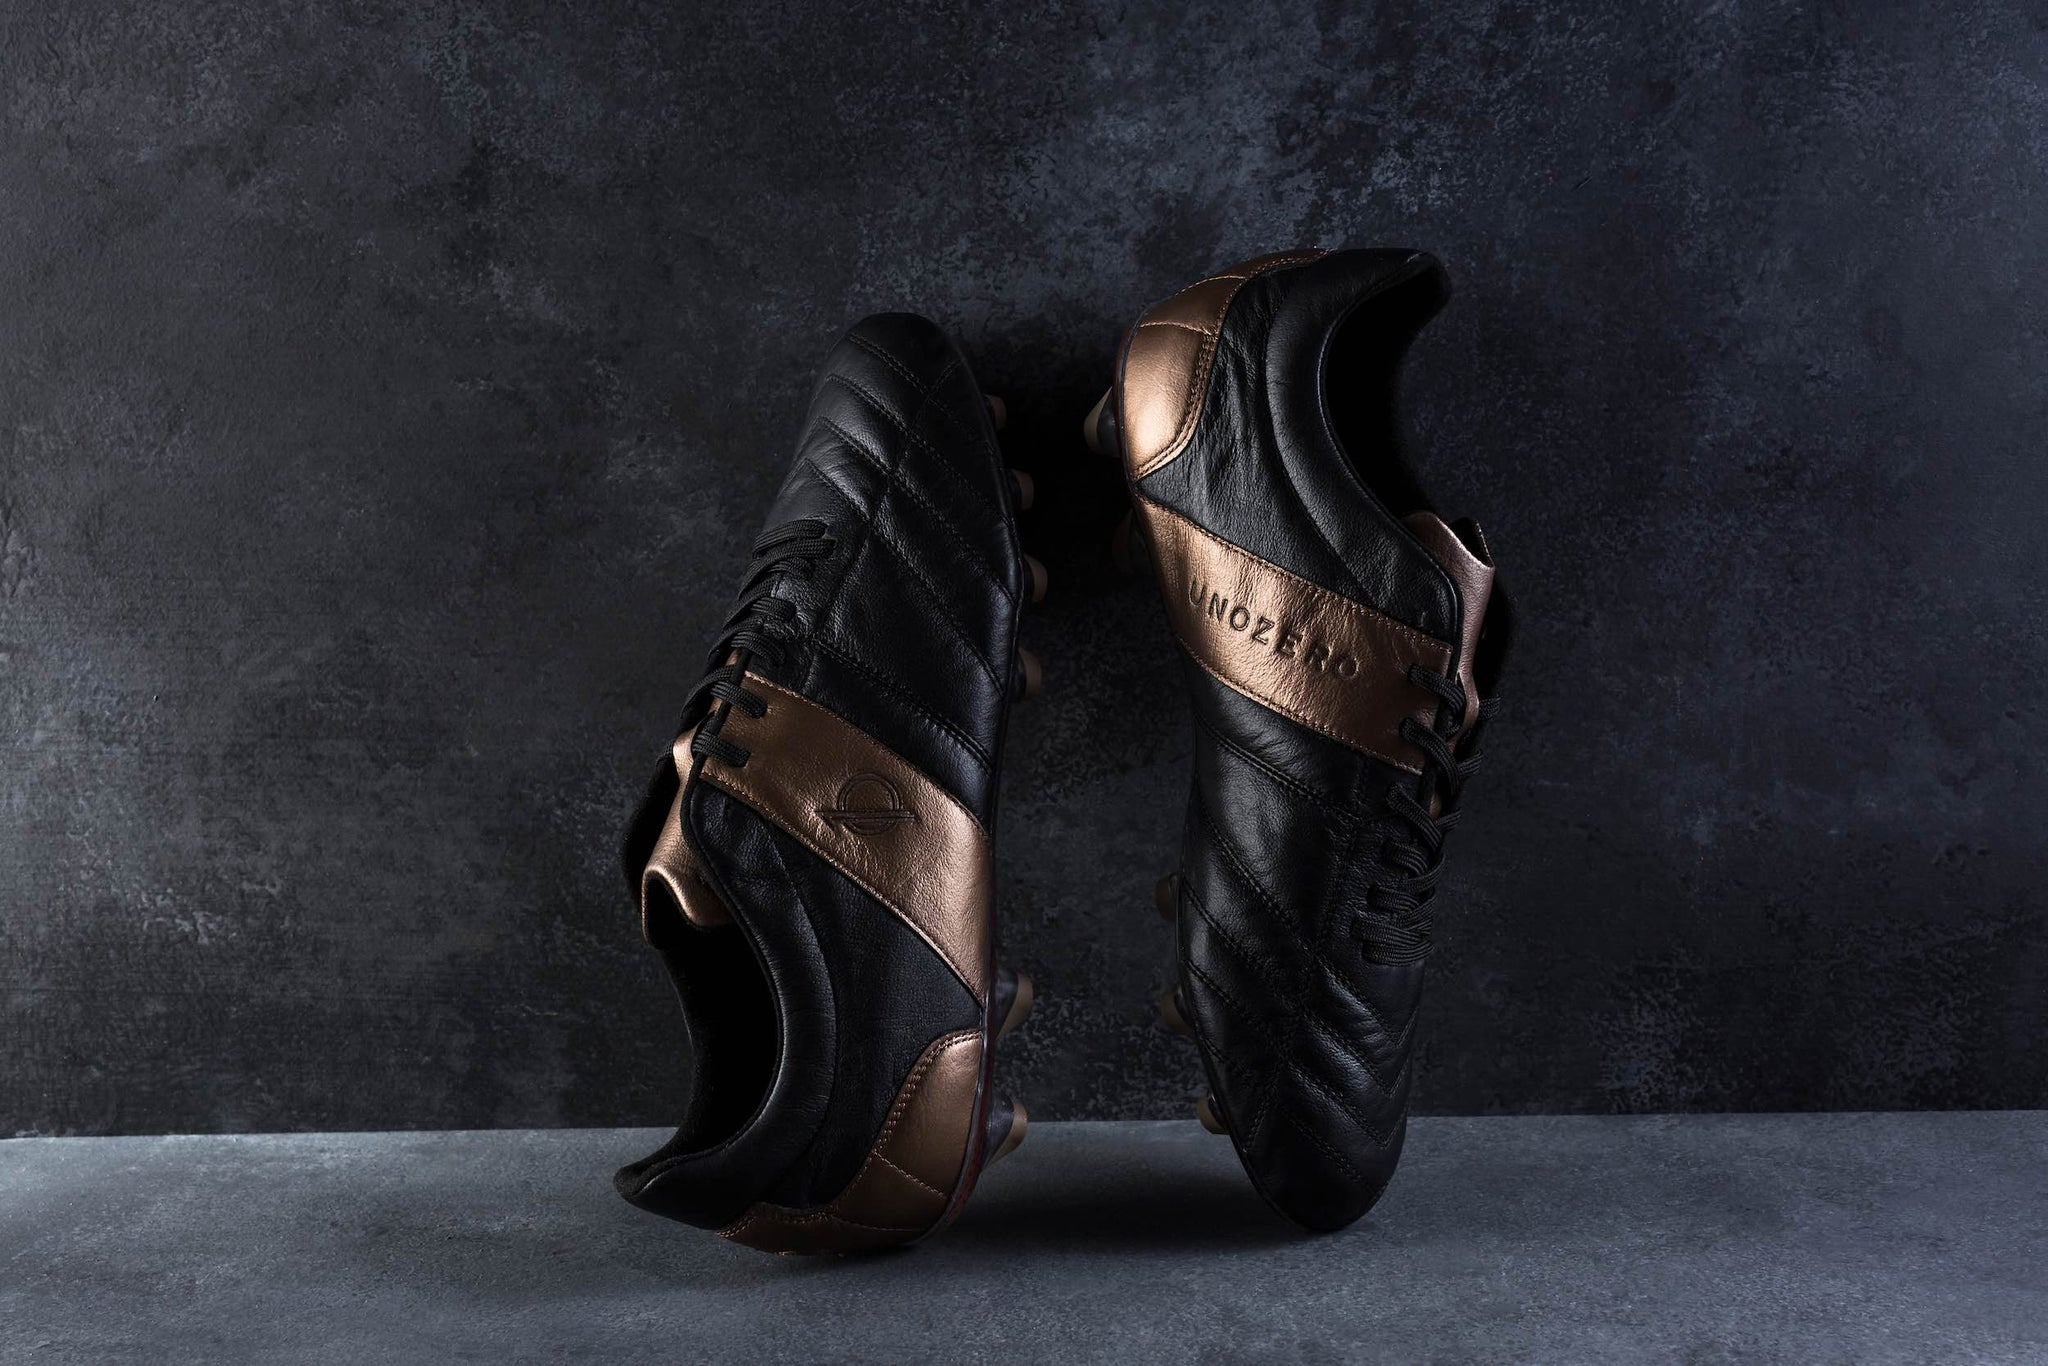 Black and gold leather cleats against wall